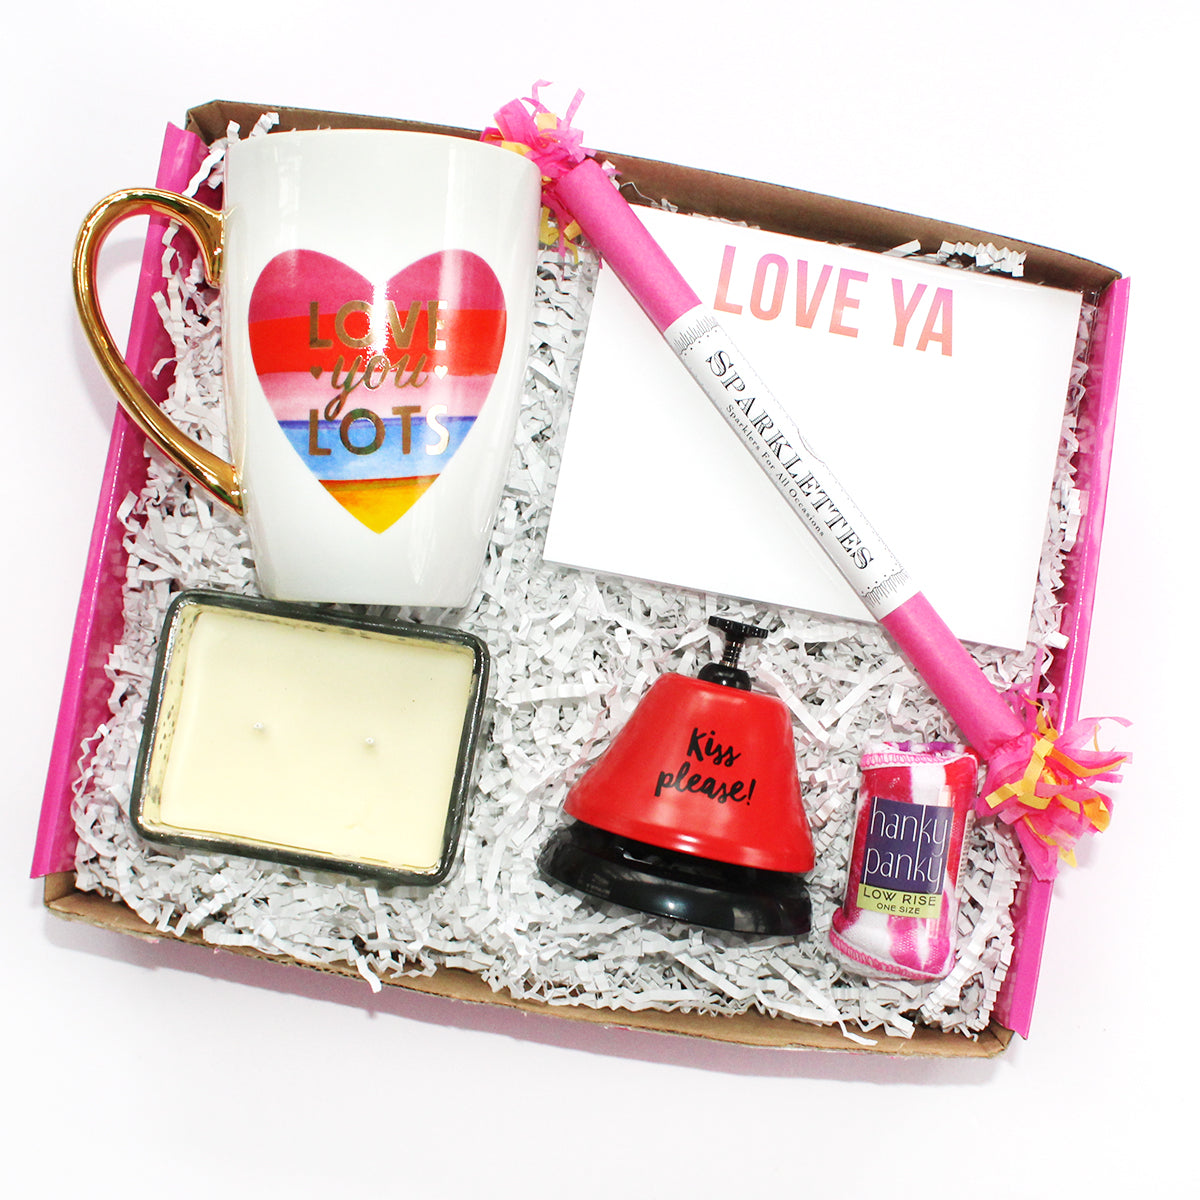 Love ya lots box with volcano candle, kiss me bell, love ya notepad, sparklette, hugs and kisses thong, mug, and love